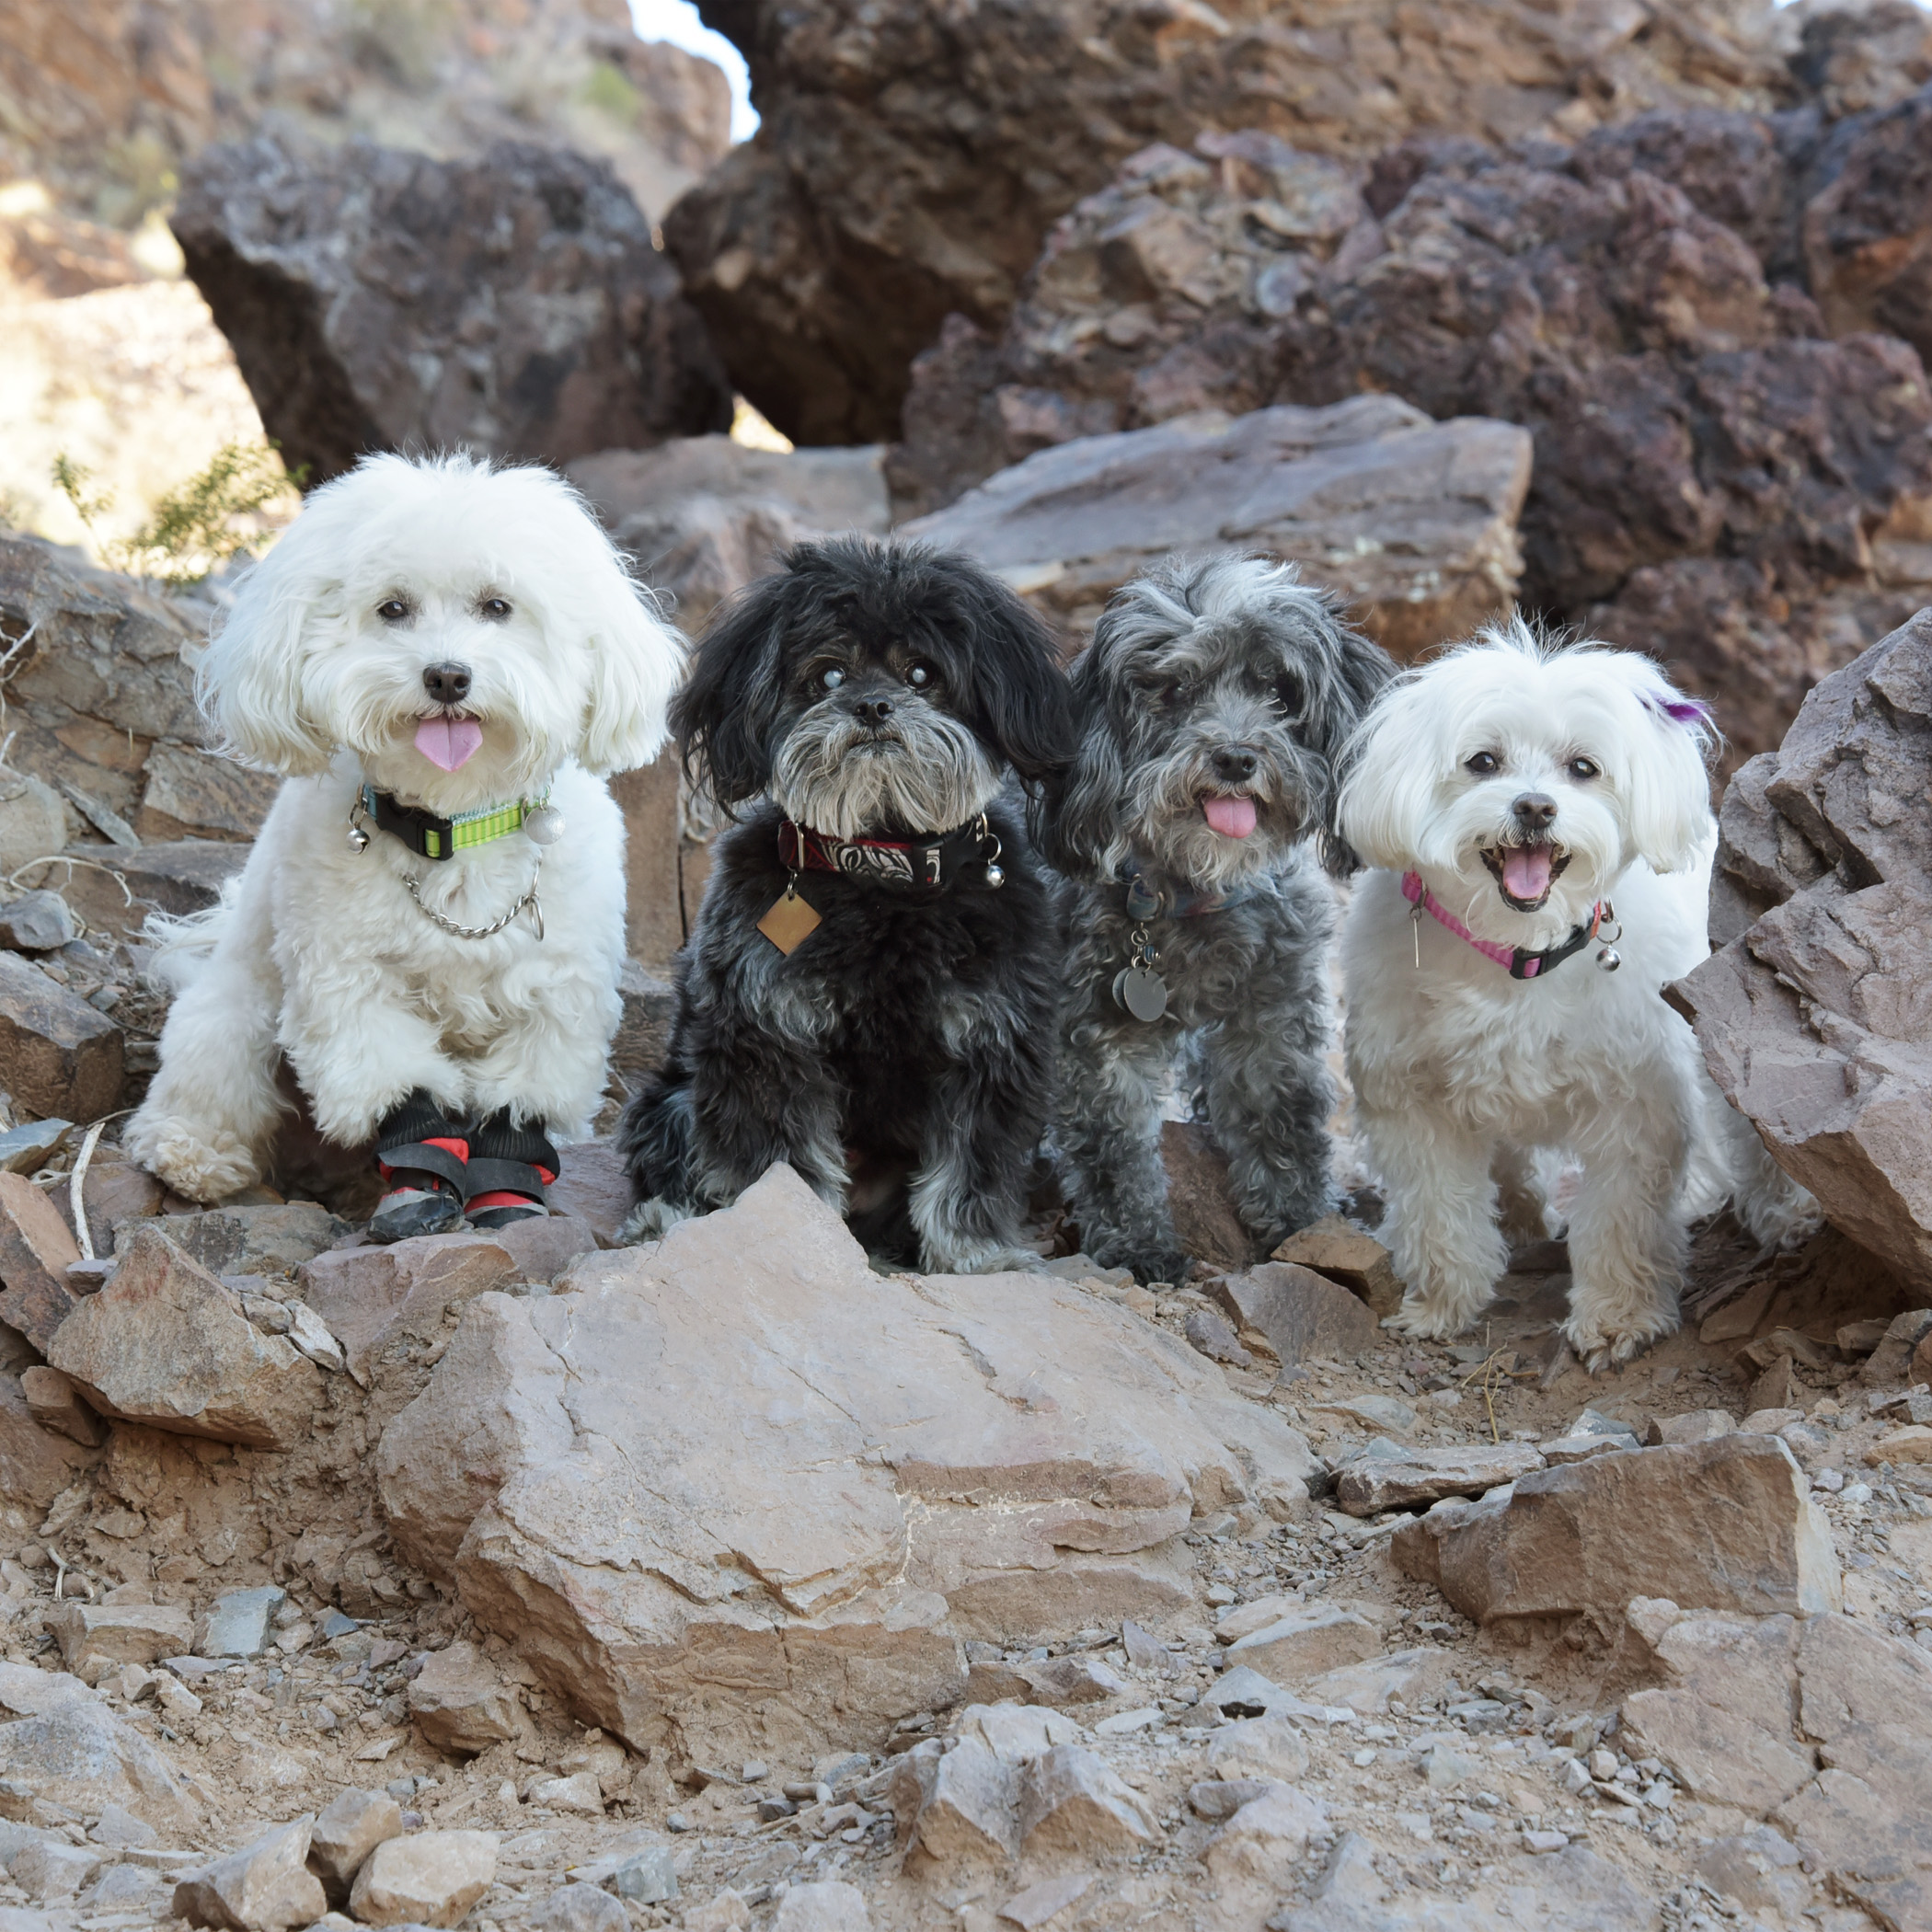 We went rock climbing today! Mommy & Daddy had to help us in a few places where the rocks were too big for our little legs. But, for the most part, we scrambled up the rocks like we were professionals!